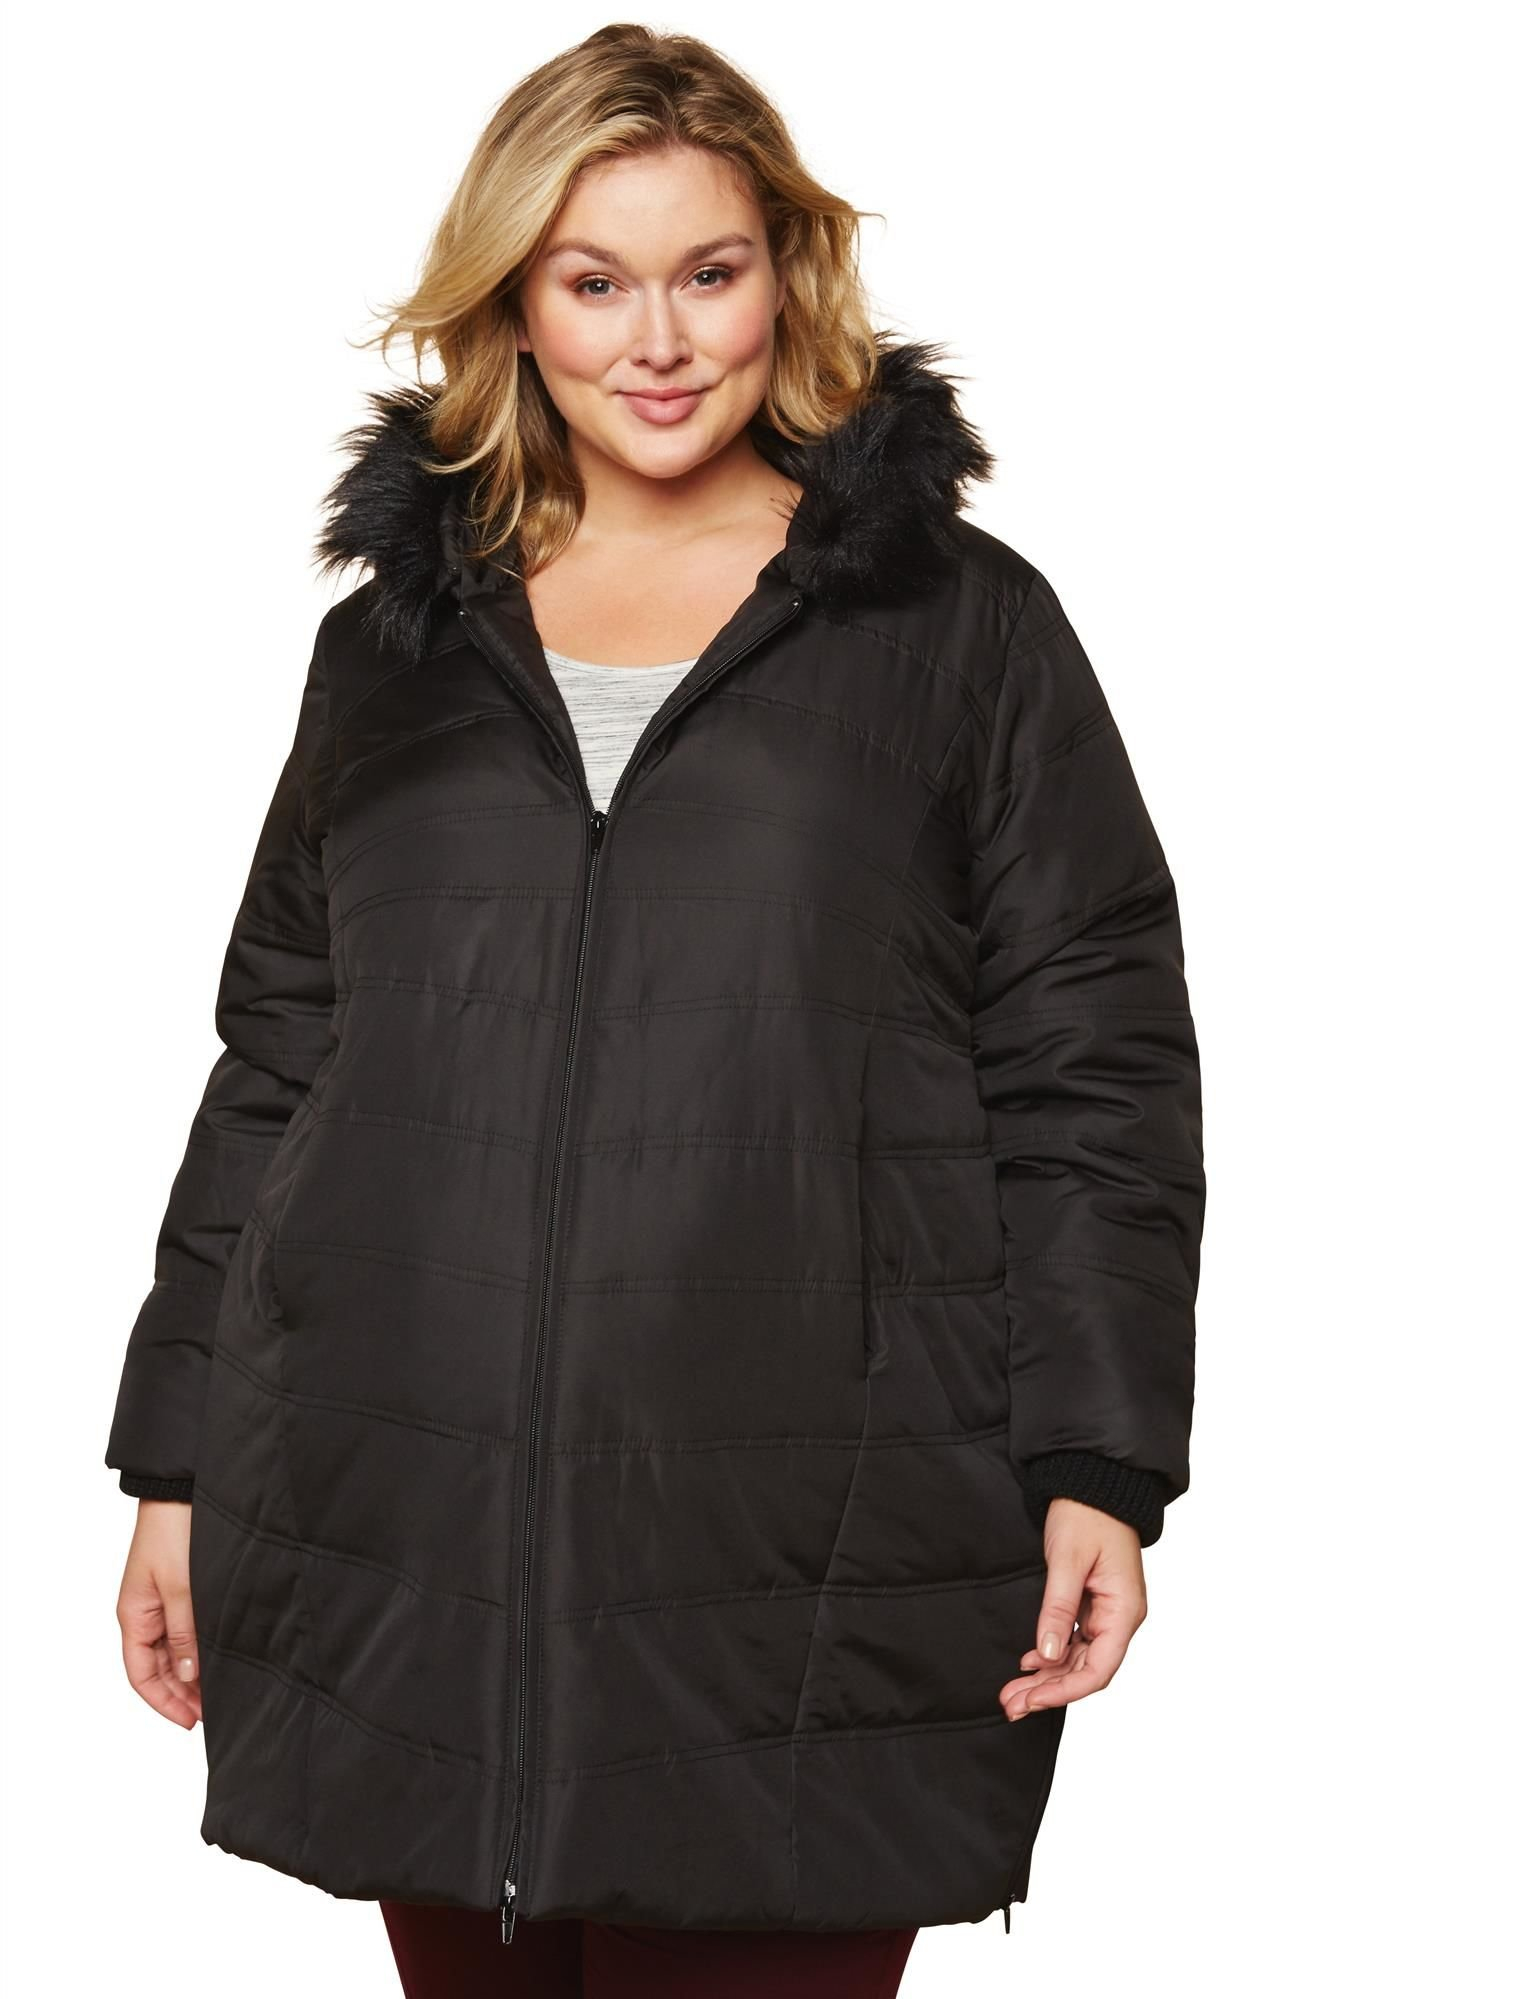 Motherhood Maternity Women's Maternity Plus-Size Puffer Coat with Attached Hood and Fur Trim Detail, Black, 2X